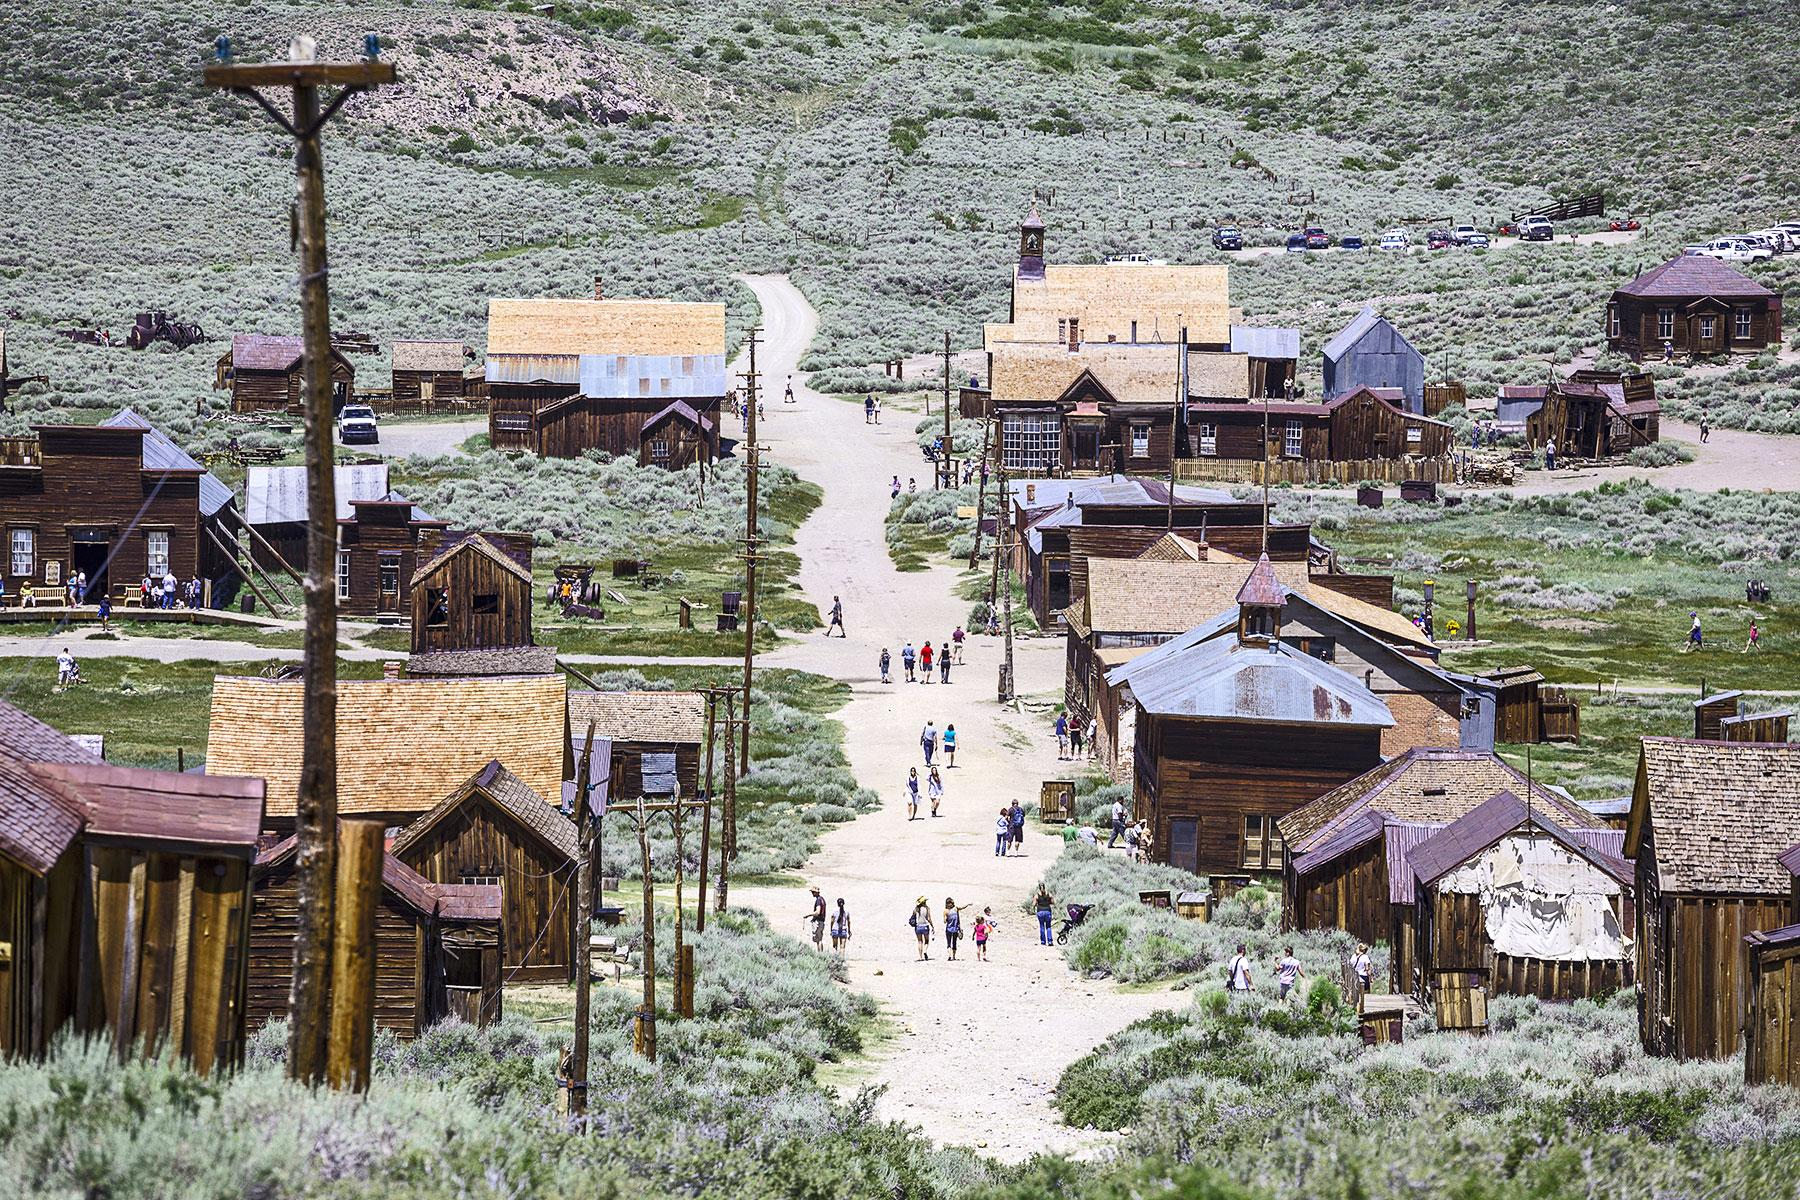 Ghost Towns and Abandoned Mining Towns You Should Visit